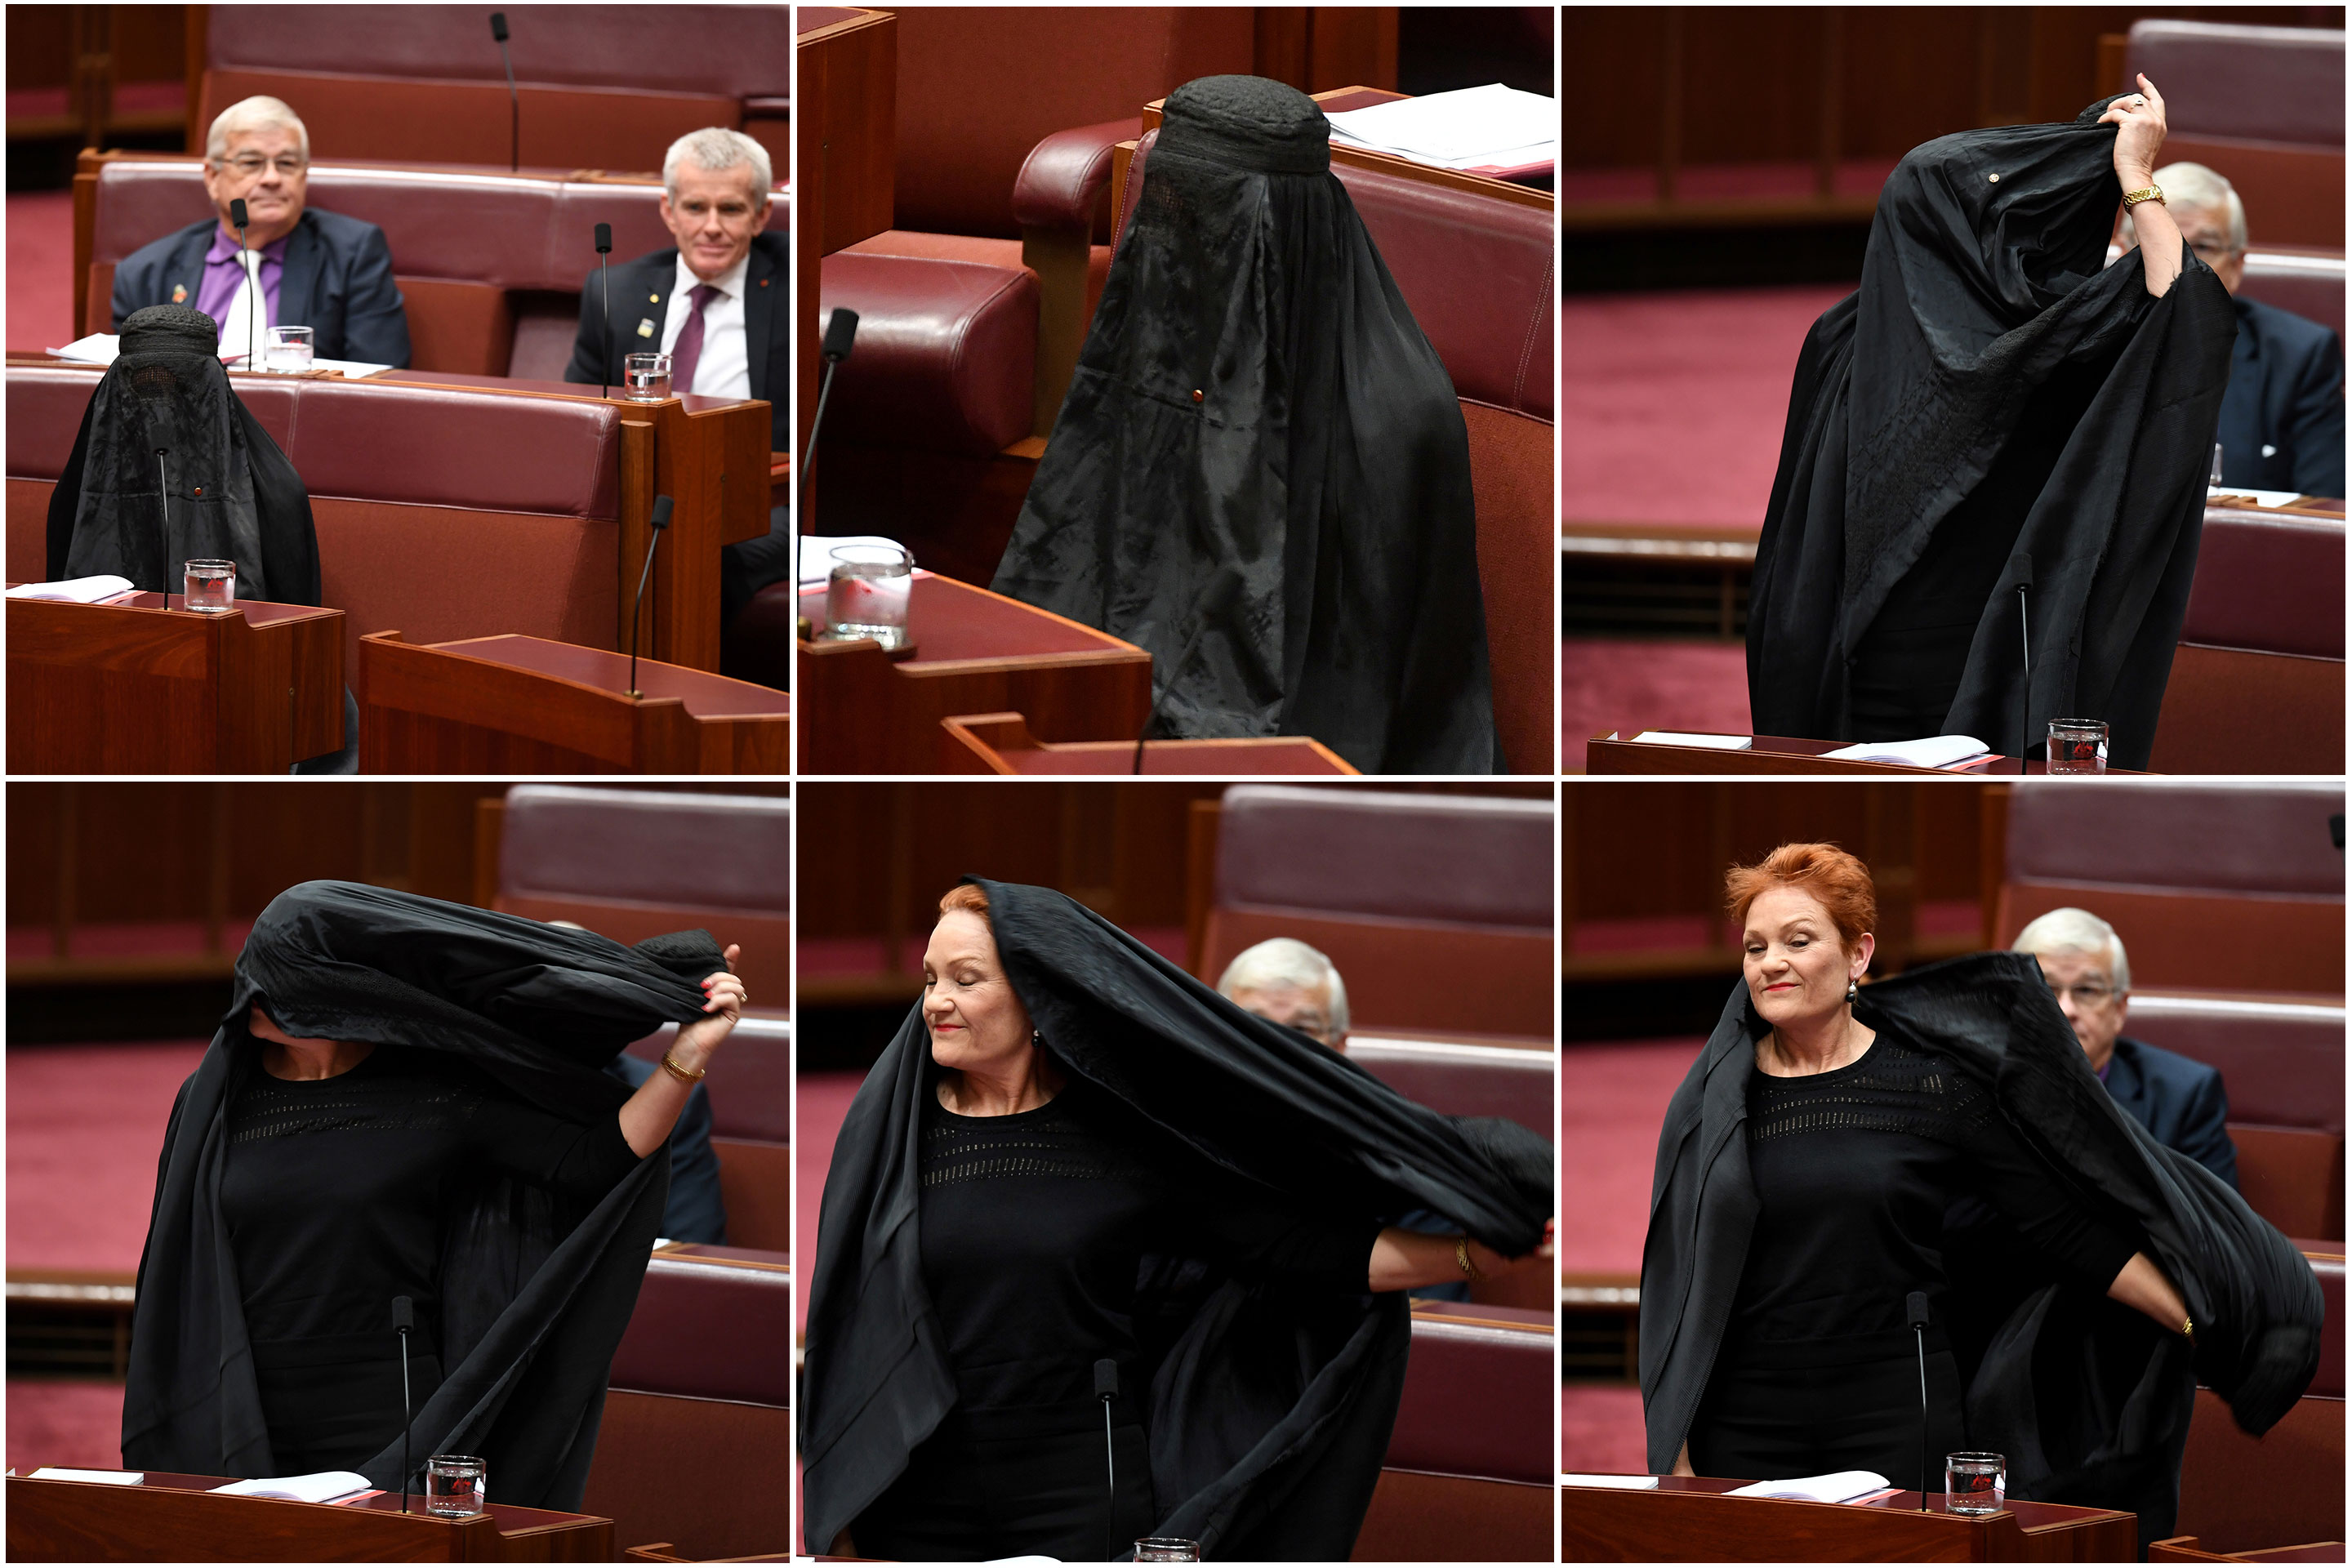 Australian One Nation party leader, Senator Pauline Hanson, wears, then removes, a burqa.